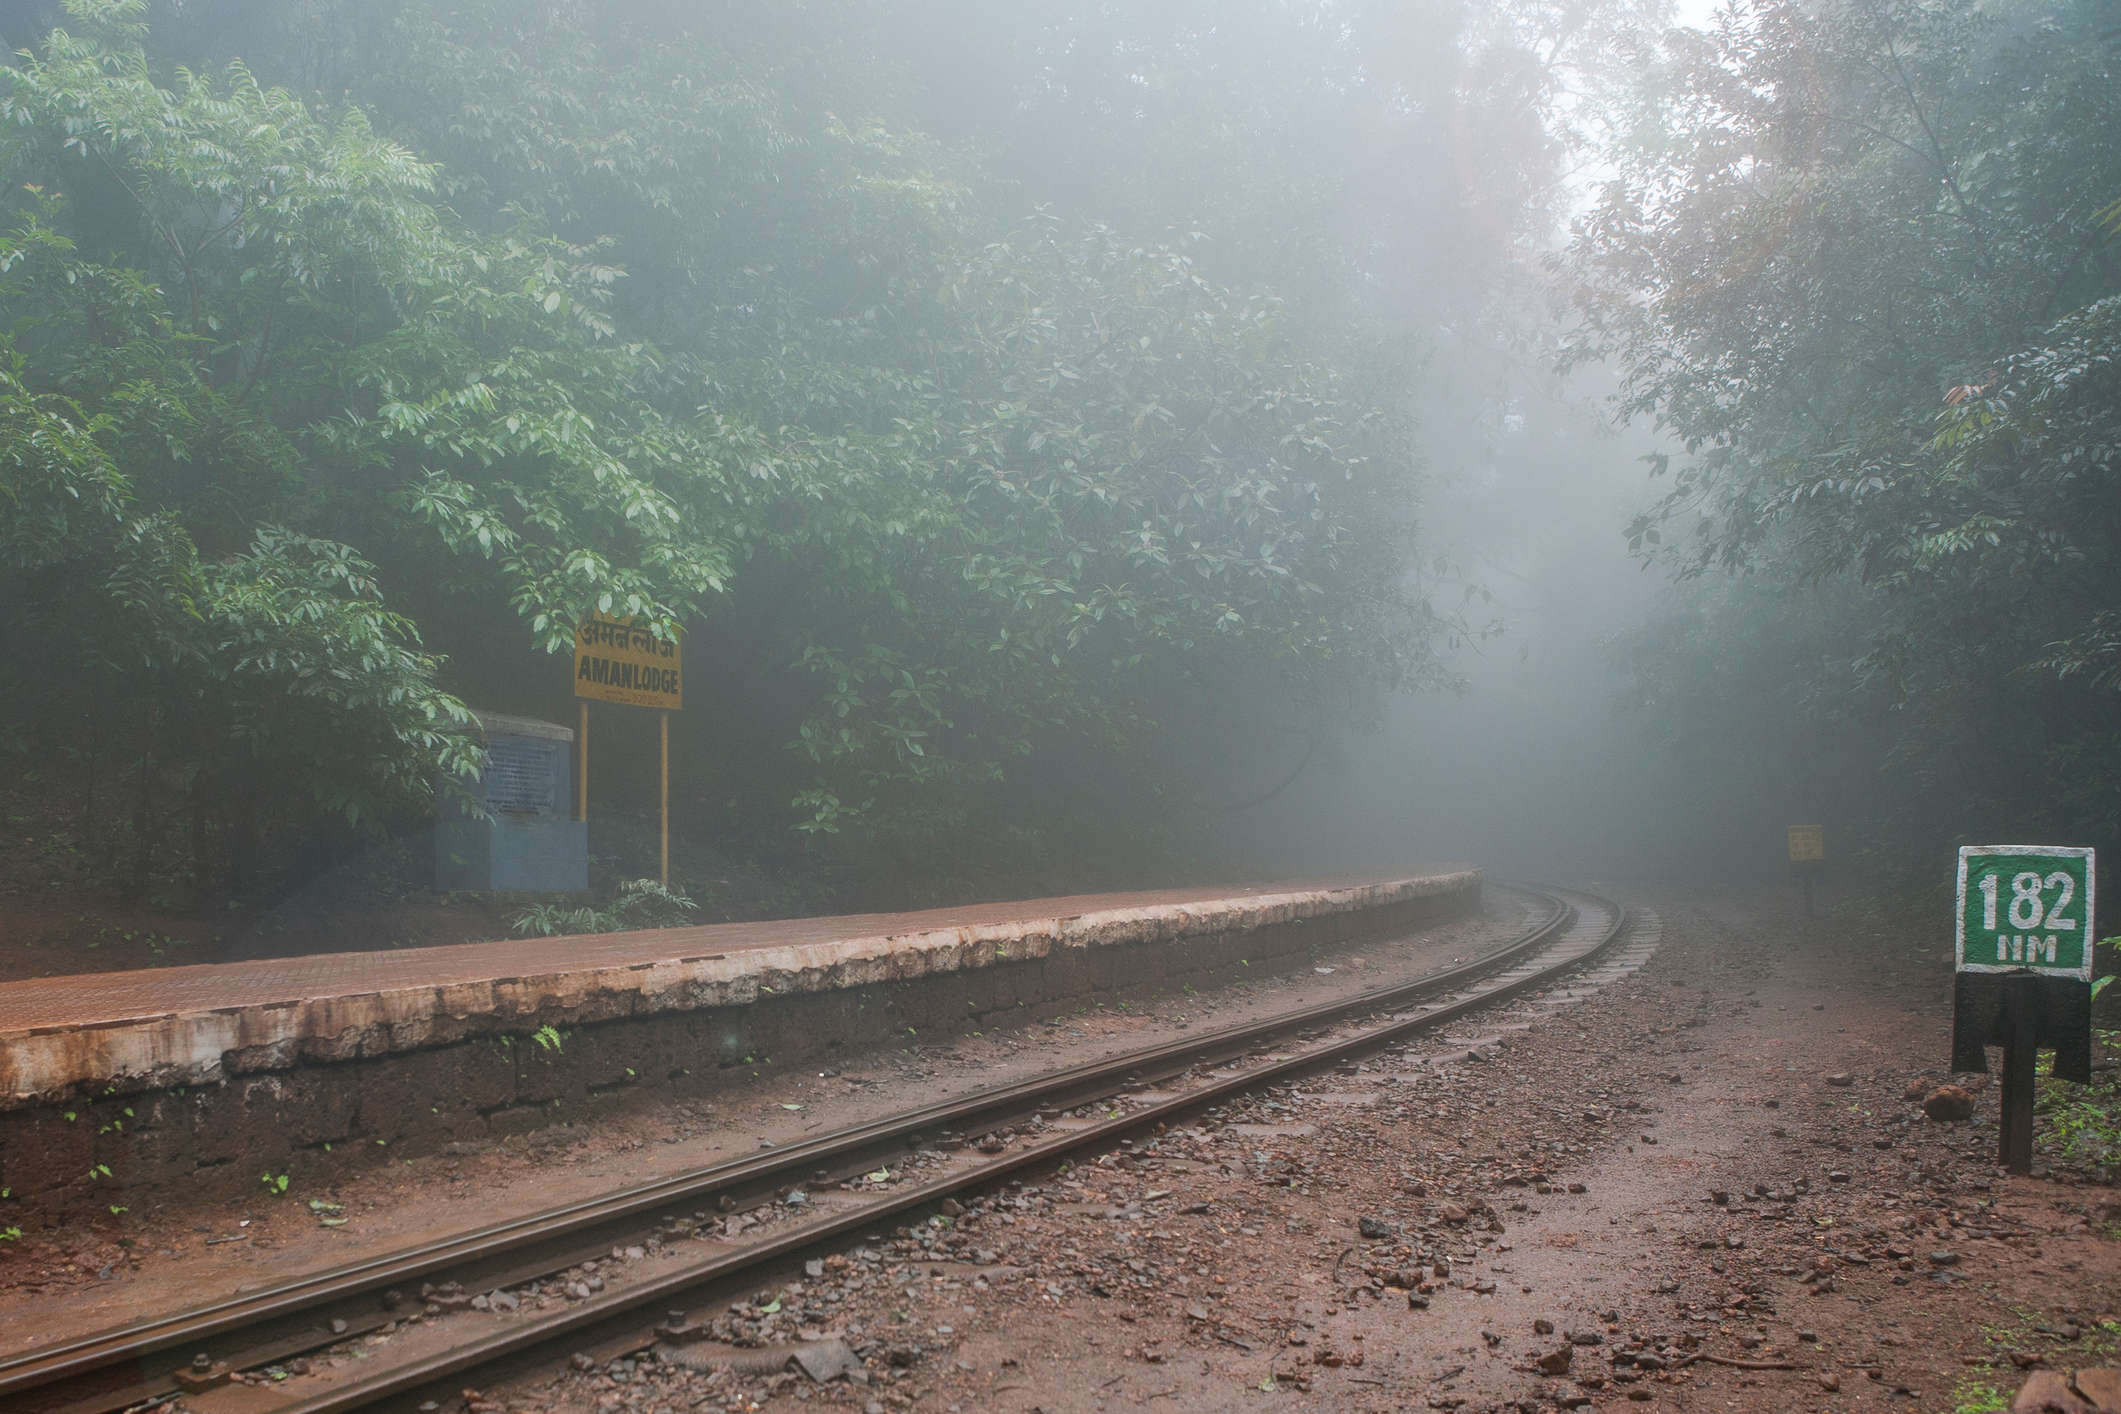 Neral-Matheran toy train ride to make a comeback very soon